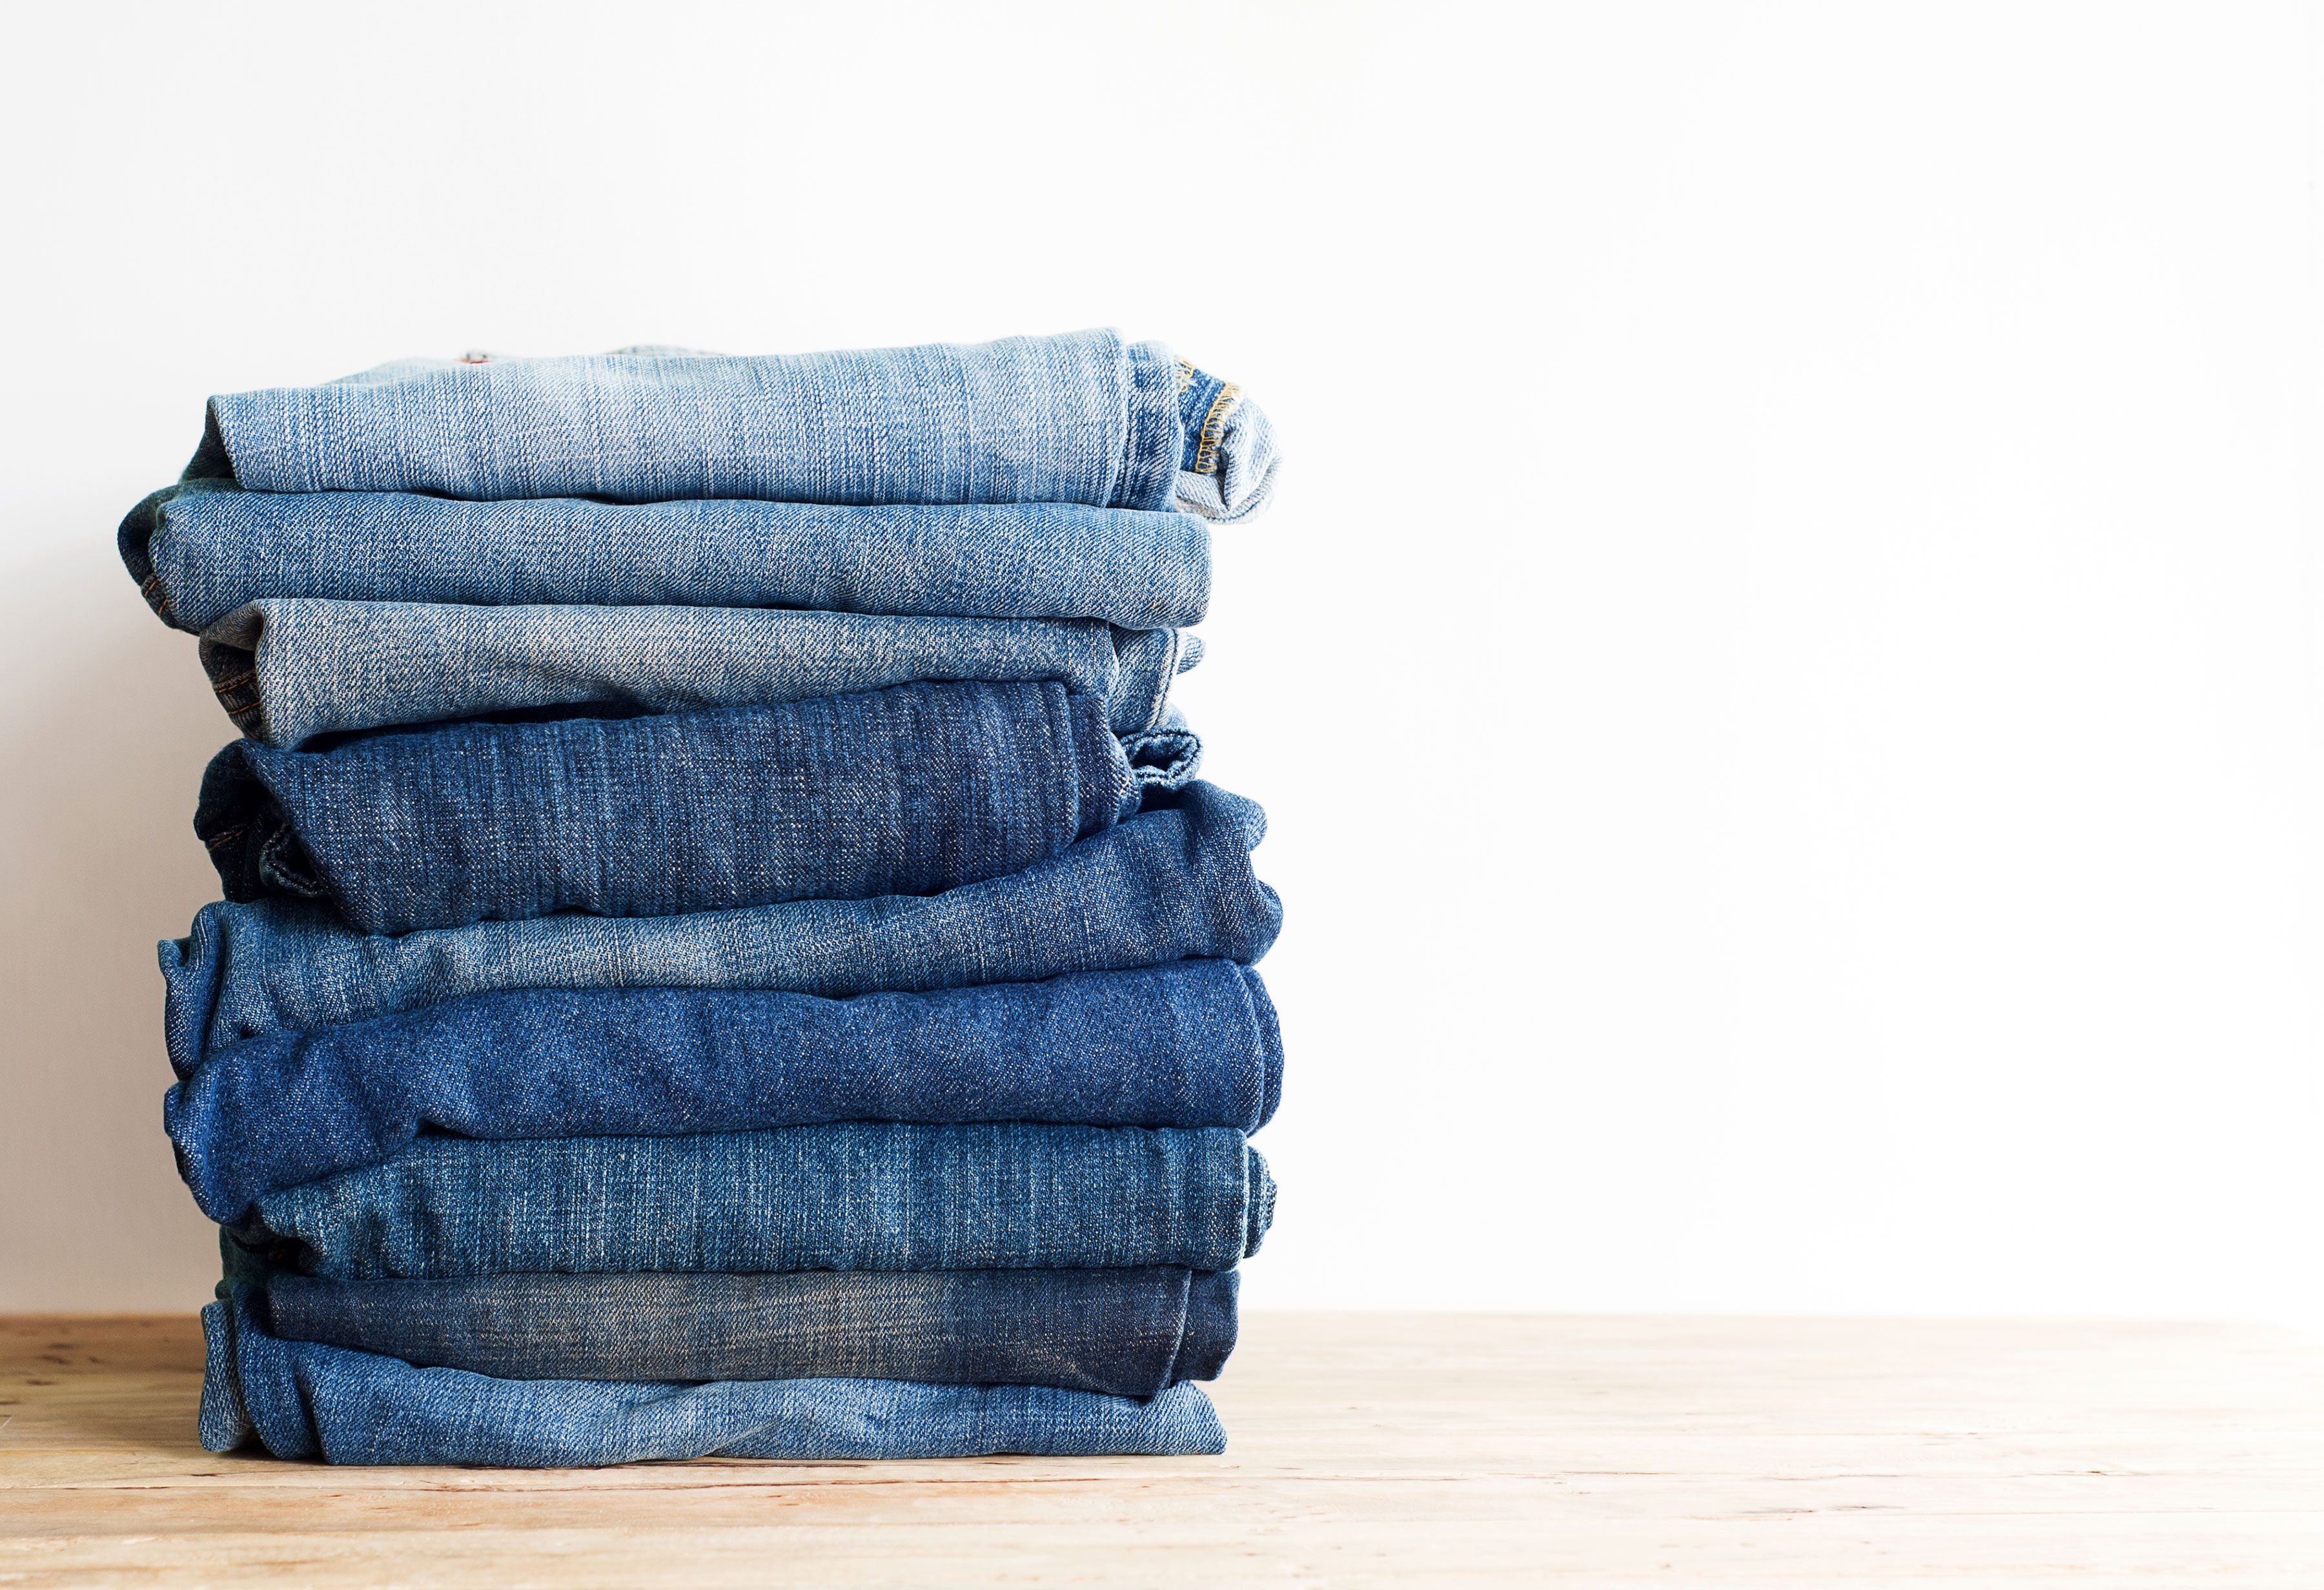 3 Things To Know When Washing Denim